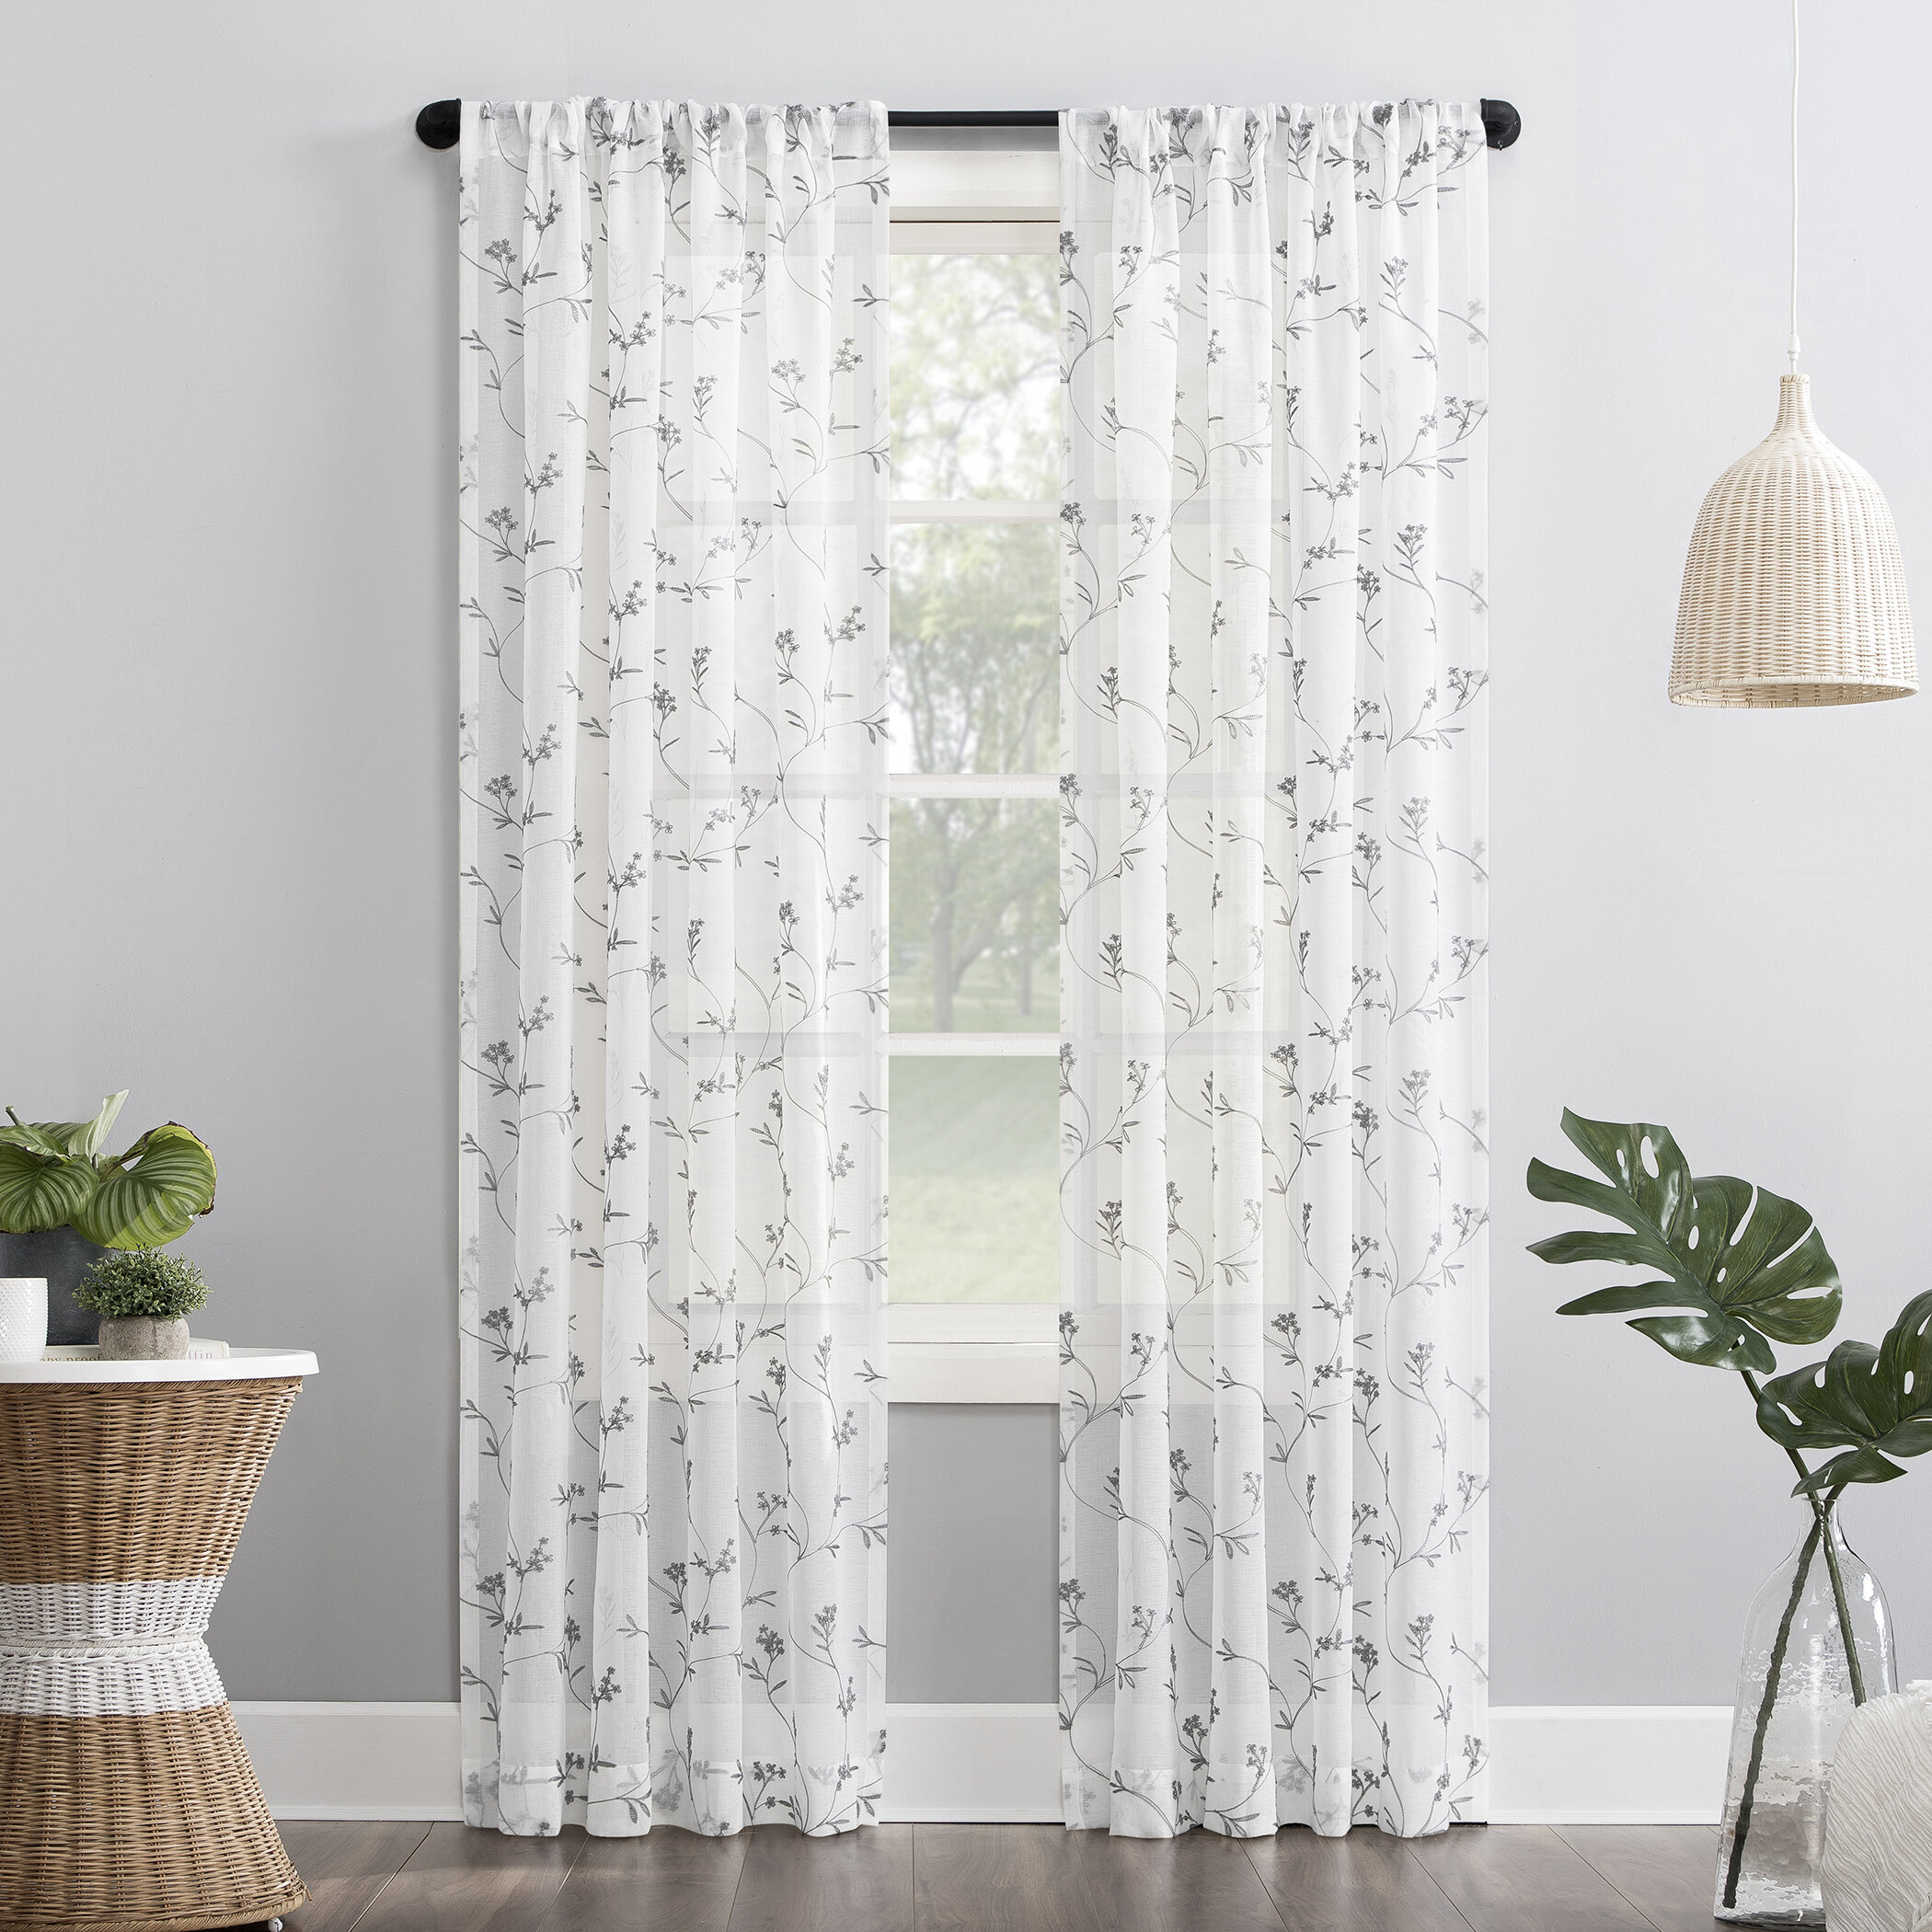 Gabriella Floral Sheer Rod Pocket Single Curtain Panel Inside Evelina Faux Dupioni Silk Extreme Blackout Back Tab Curtain Panels (View 16 of 20)